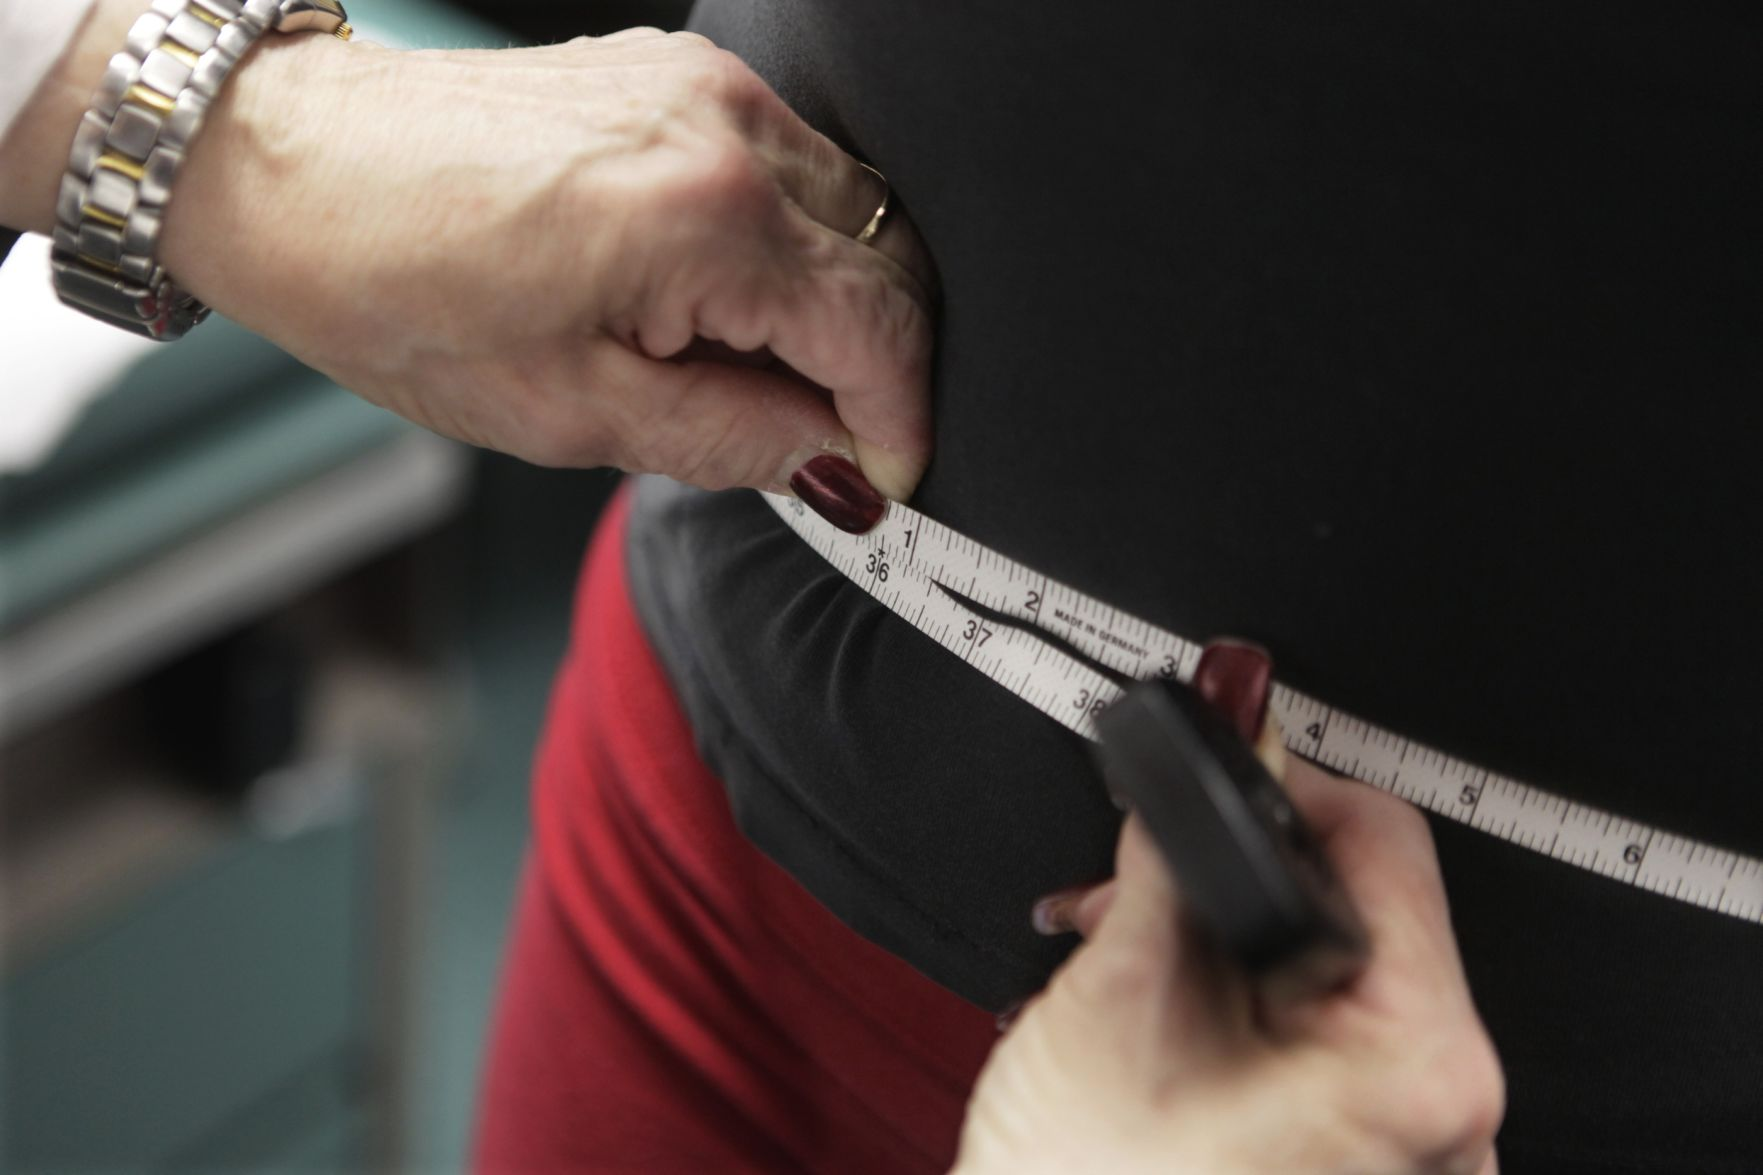 New CDC data shows U.S. adults still struggling with obesity